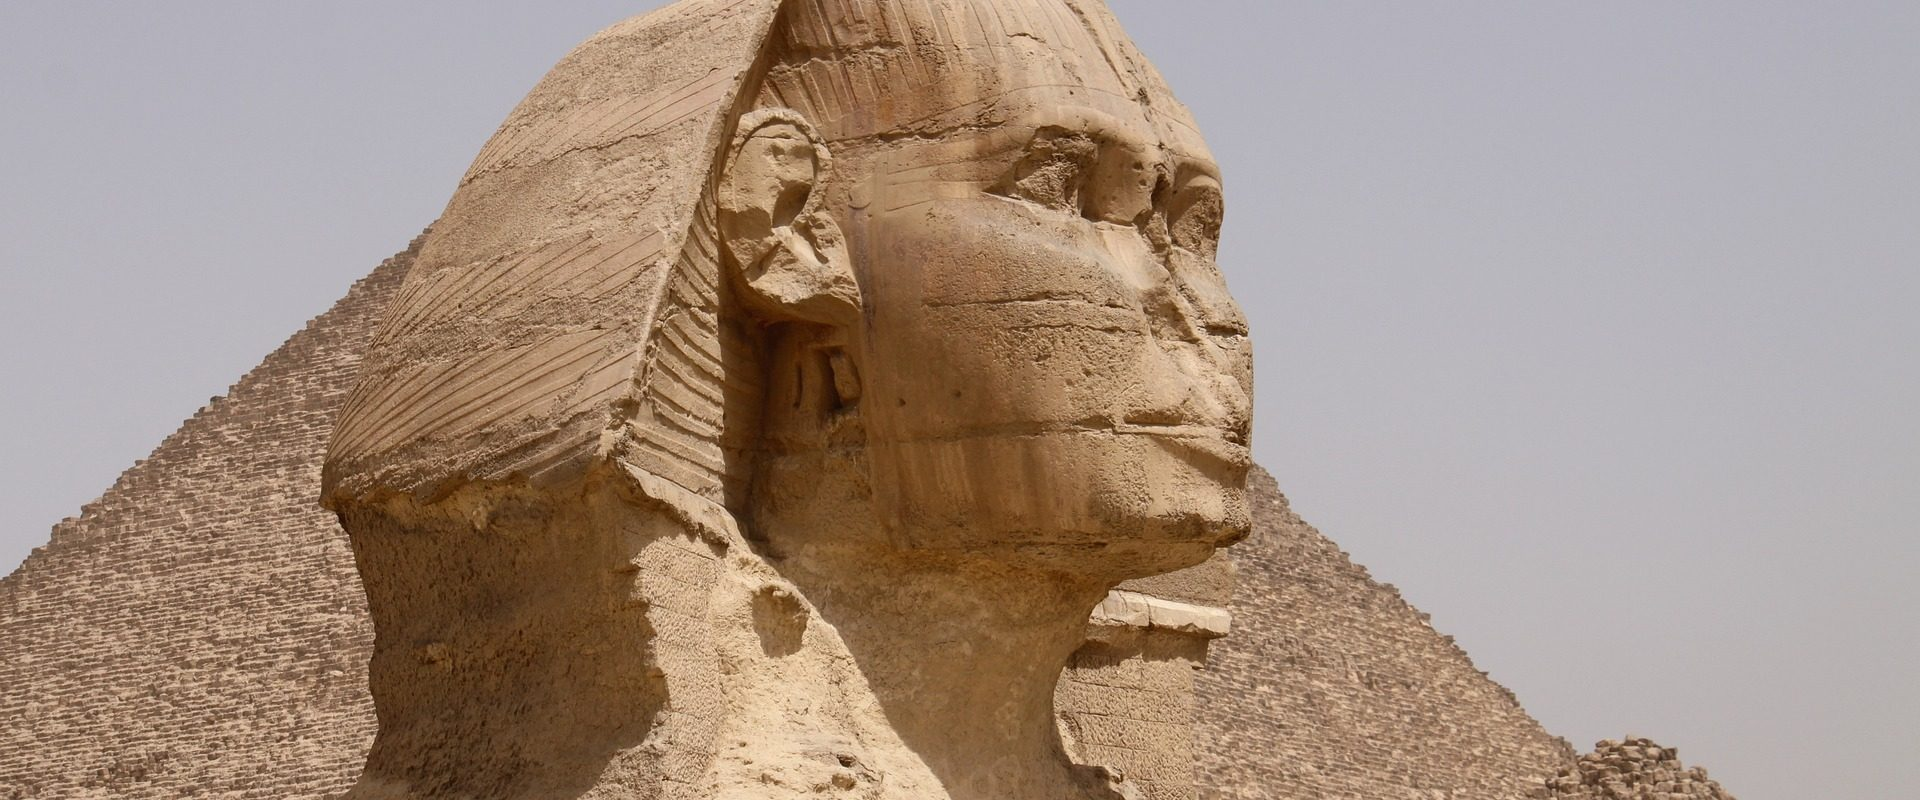 2 days in cairo itinerary